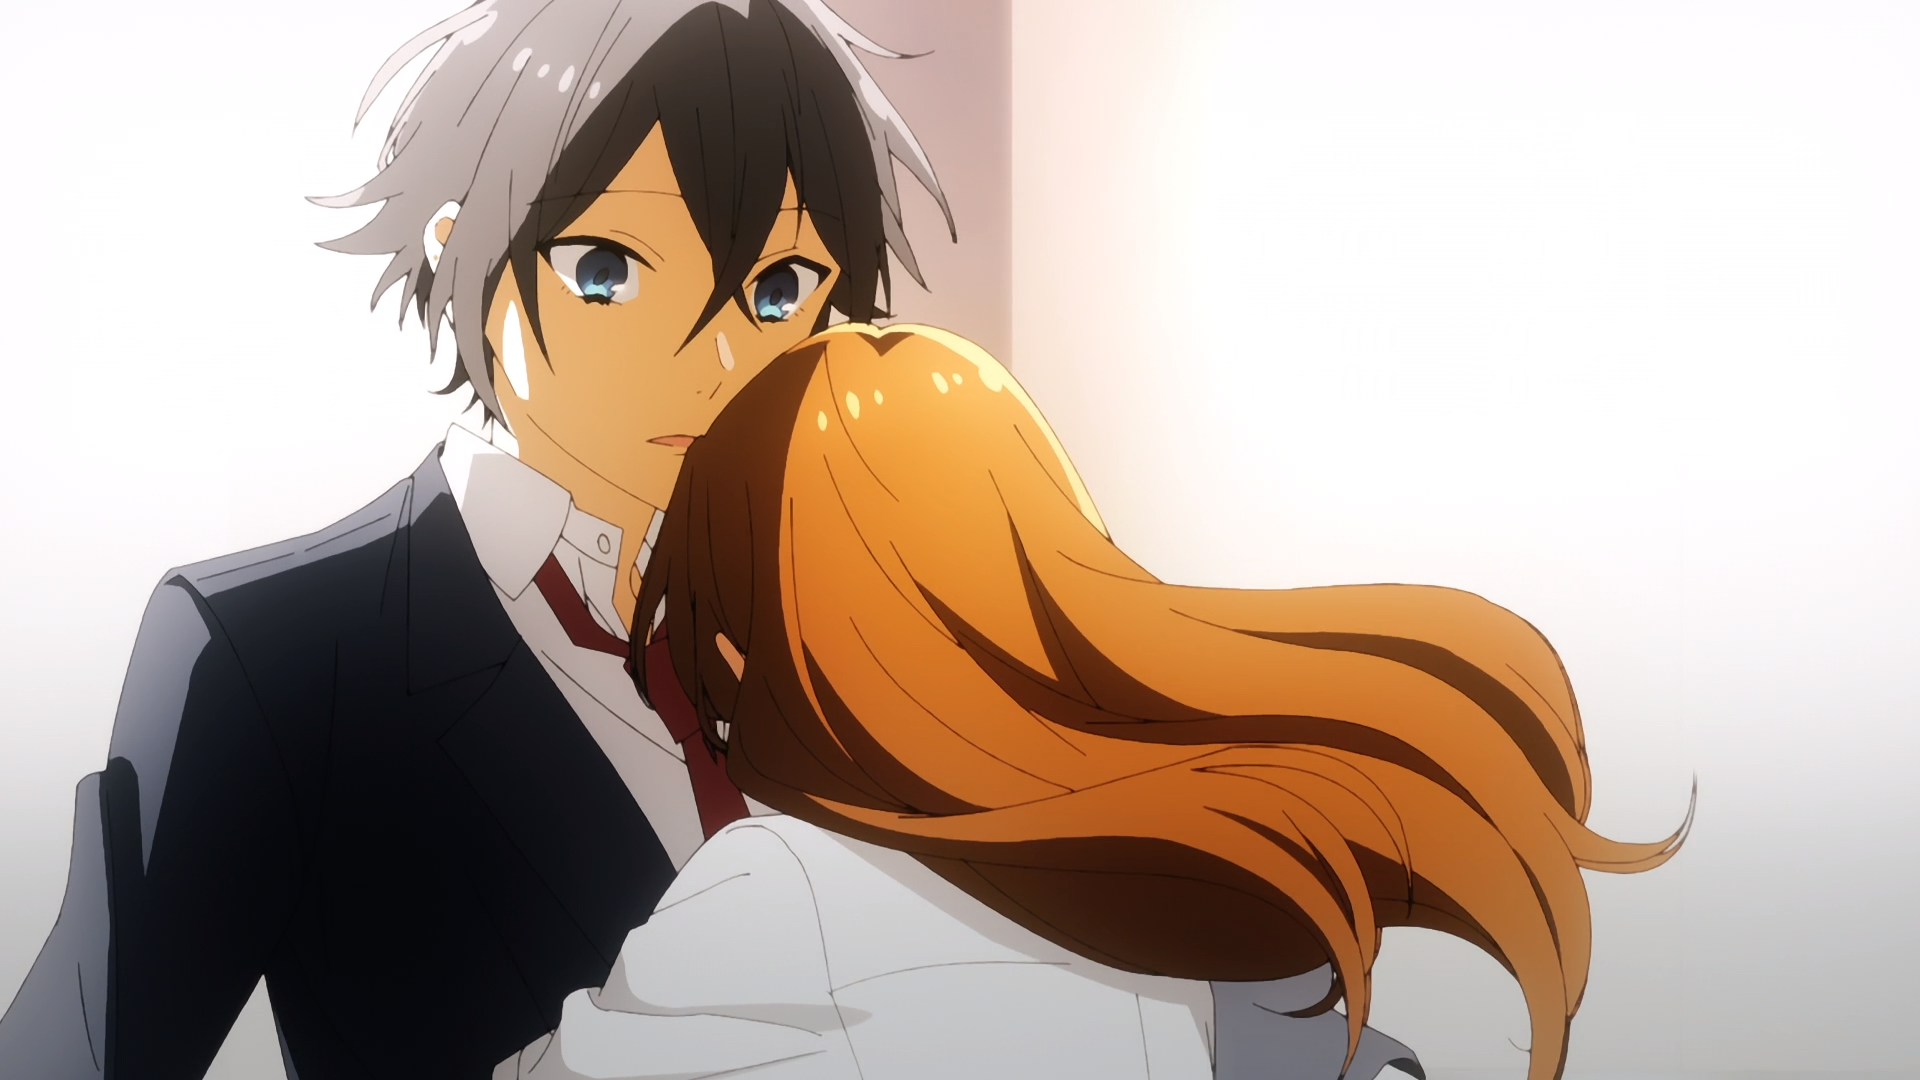 Horimiya Season 1 Episode 7